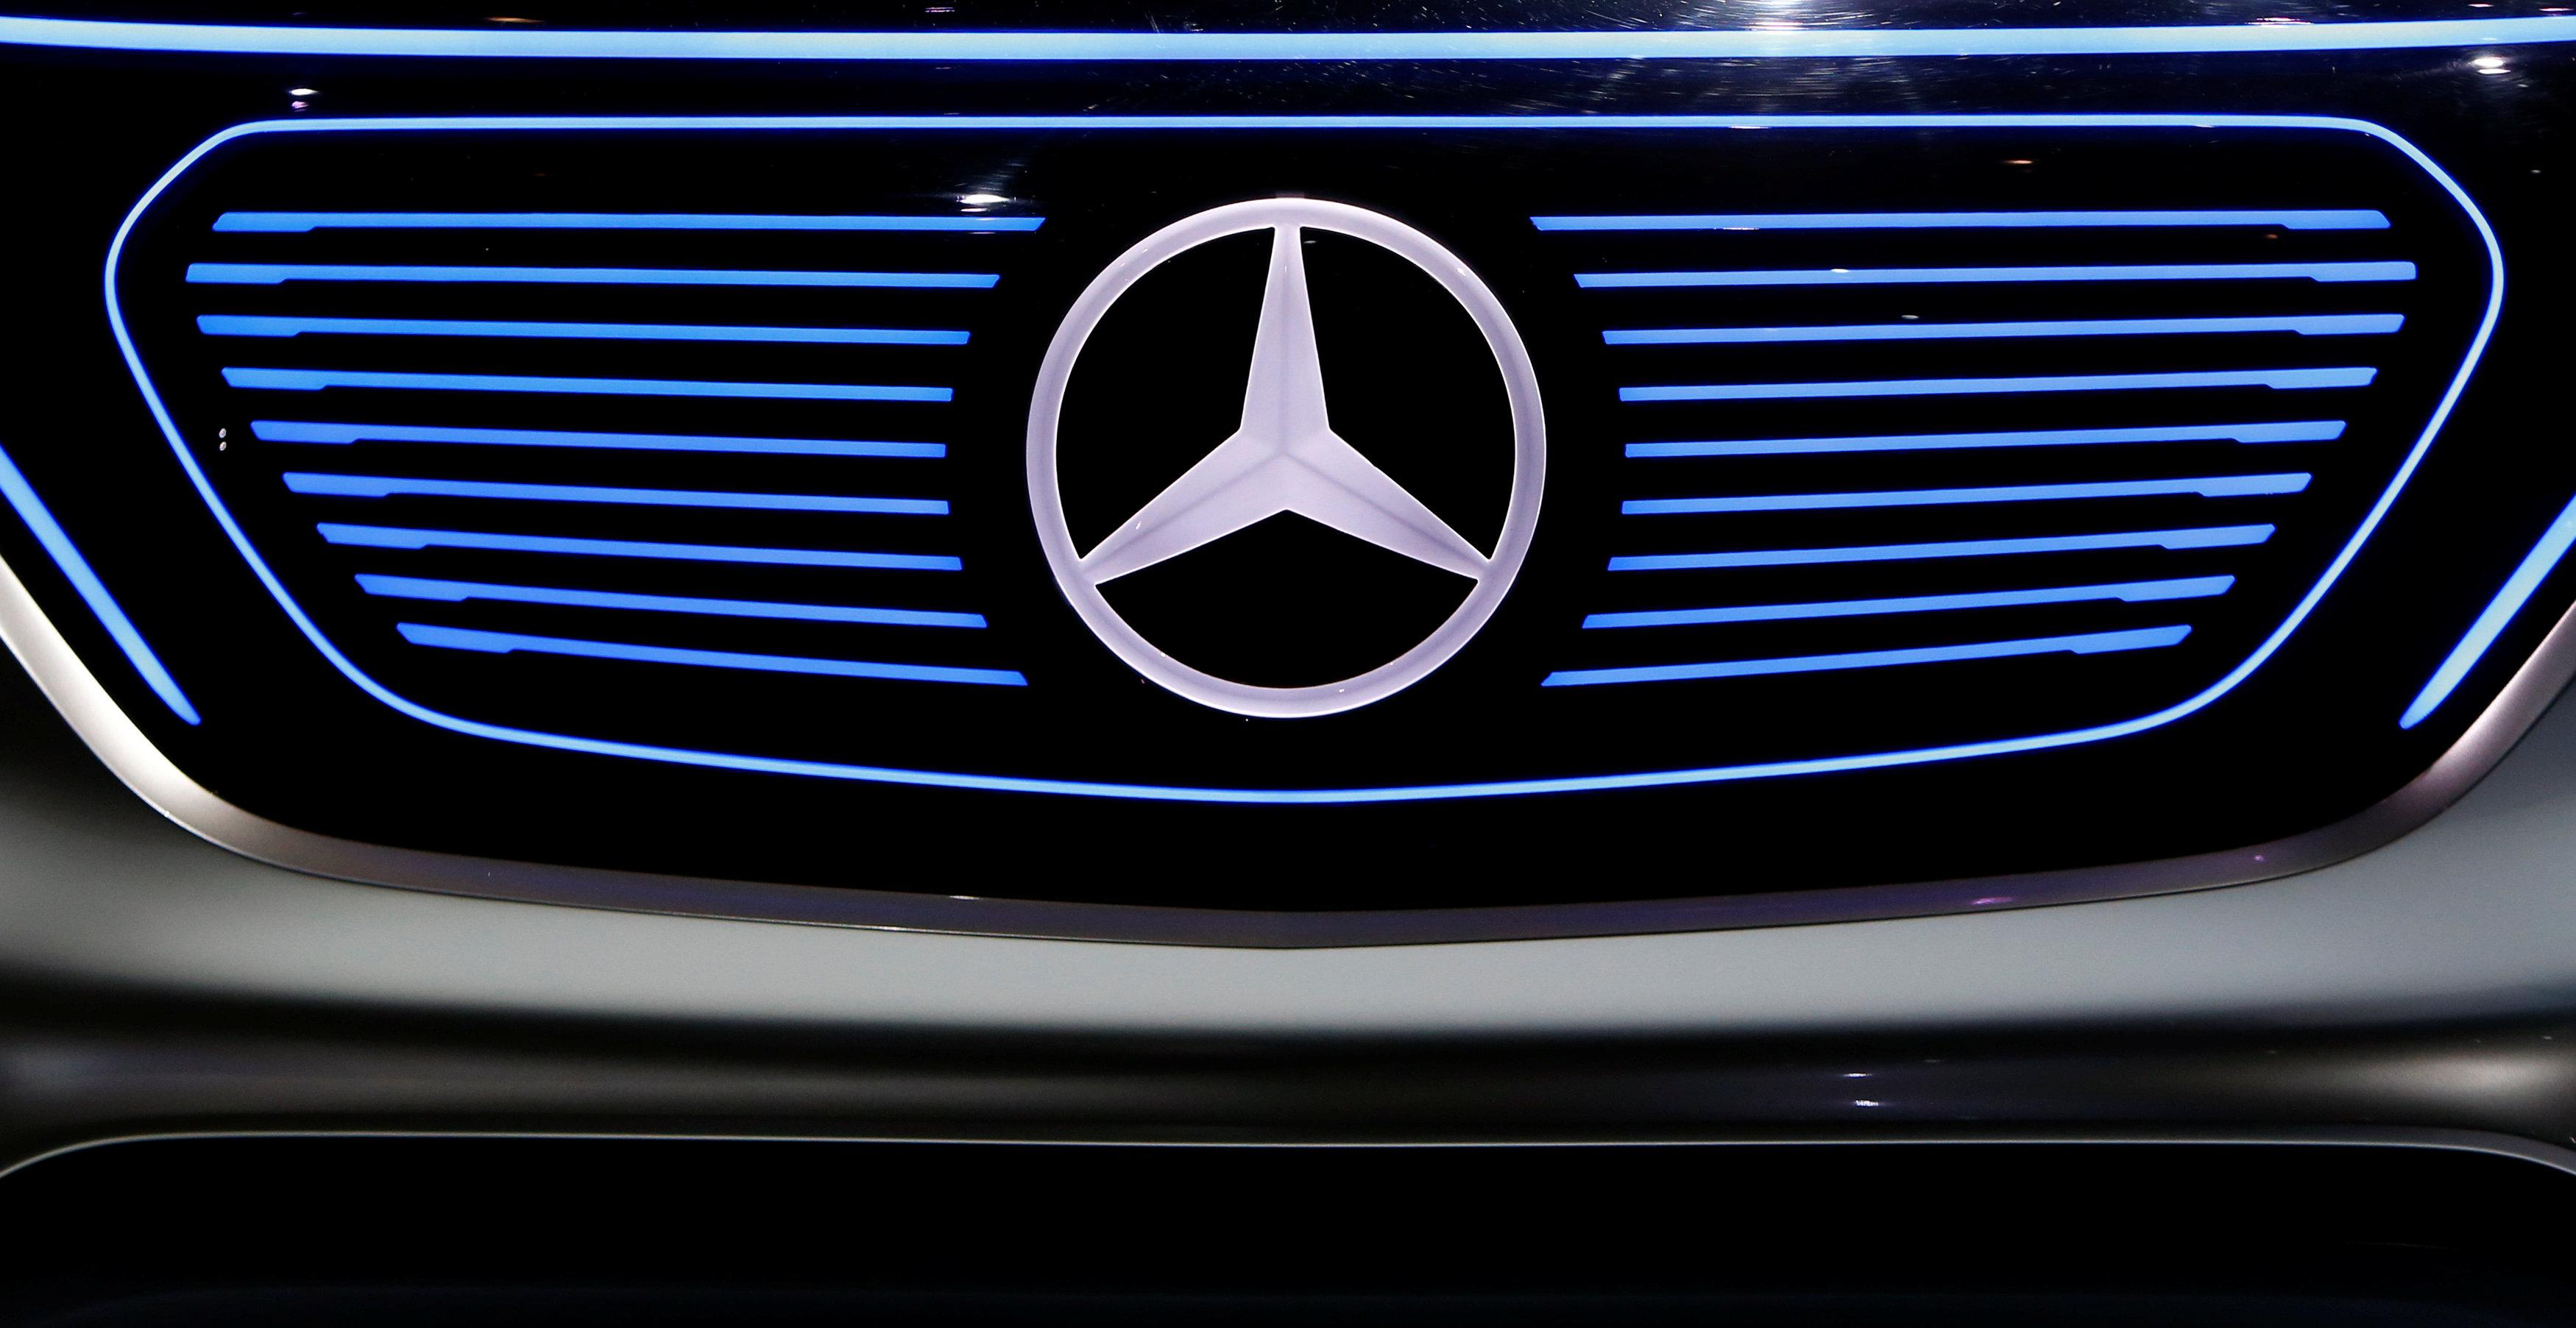 The Mercedes star logo of an EQ concept car is pictured before the annual news conference of Daimler AG in Stuttgart, Germany, February 2, 2017.   Michaela Rehle